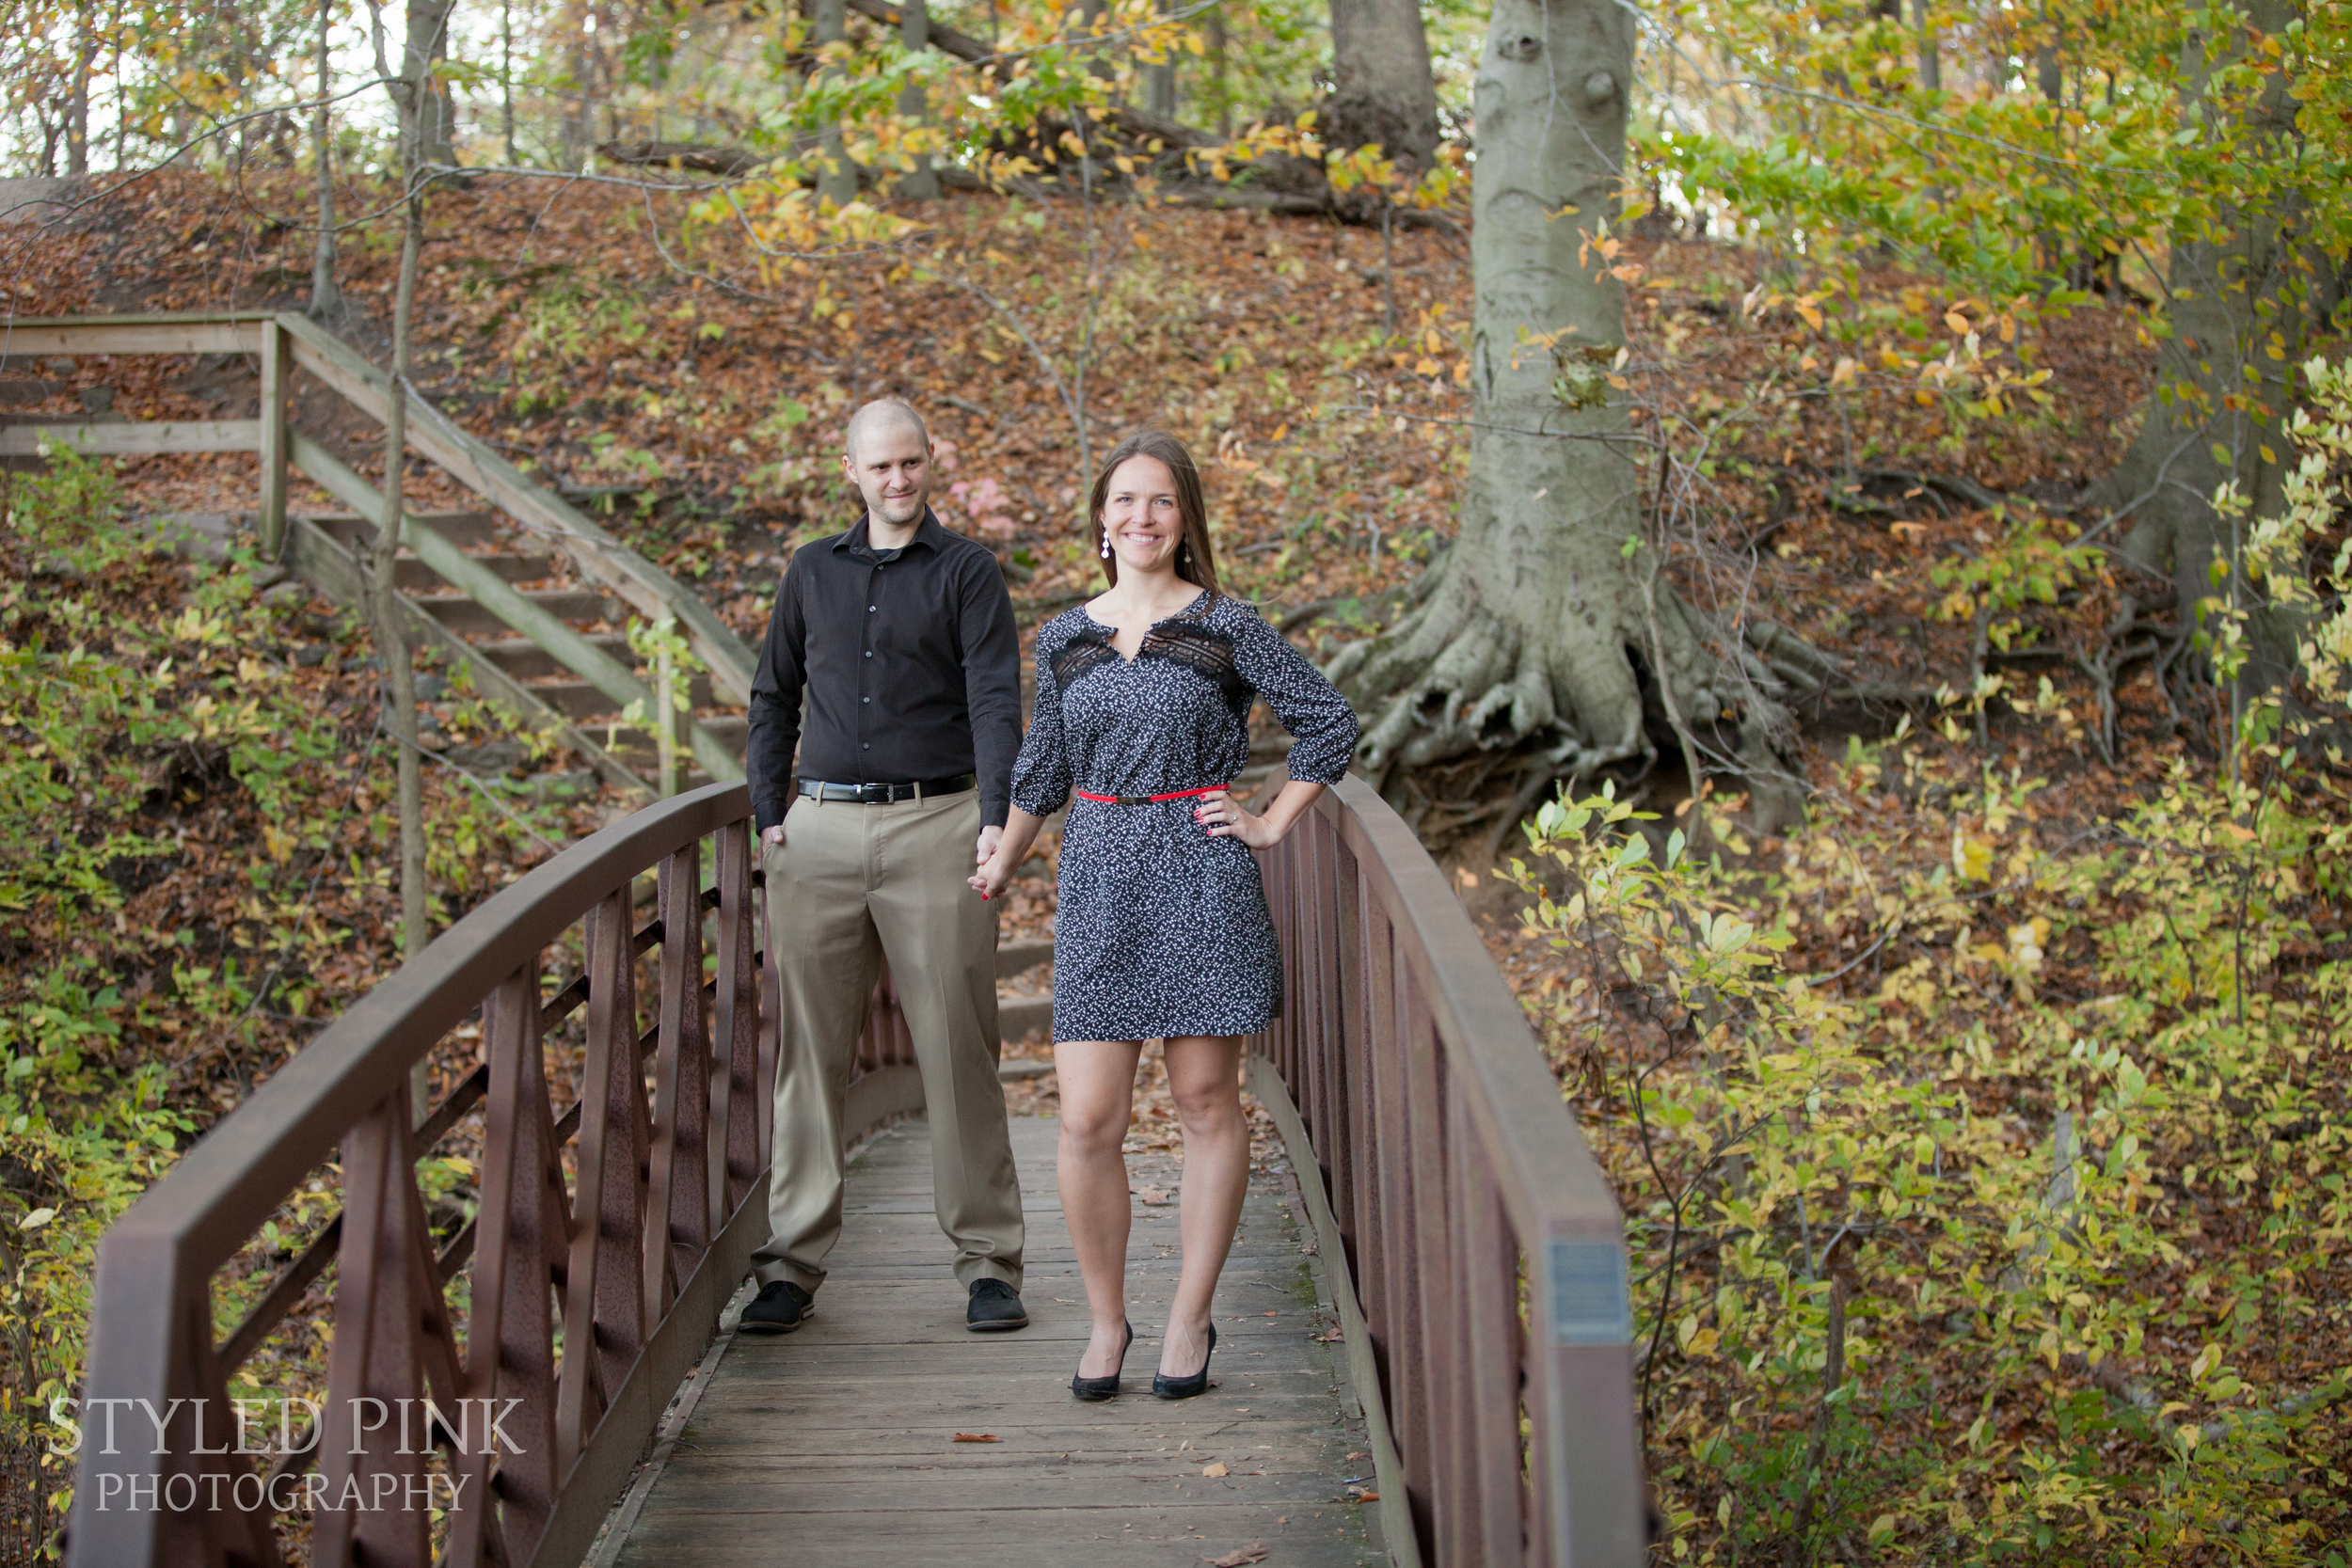 styled-pink-smithville-mansion-engagement-10